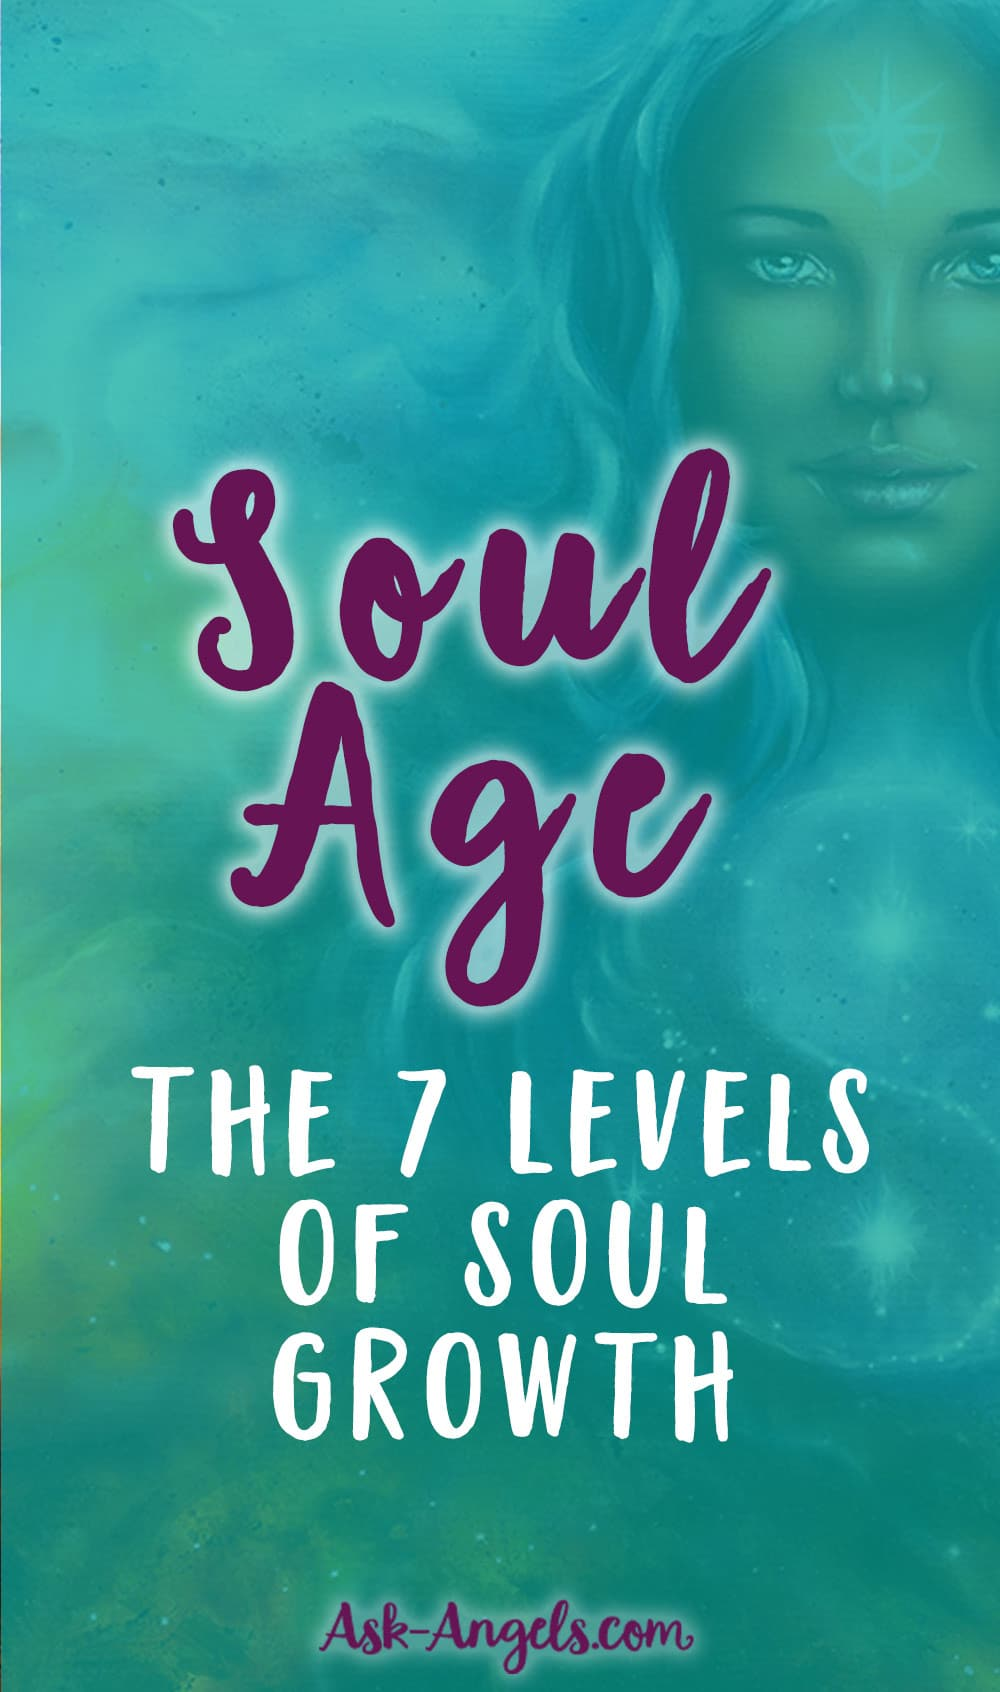 Soul Age- The 7 Levels of Soul Growth